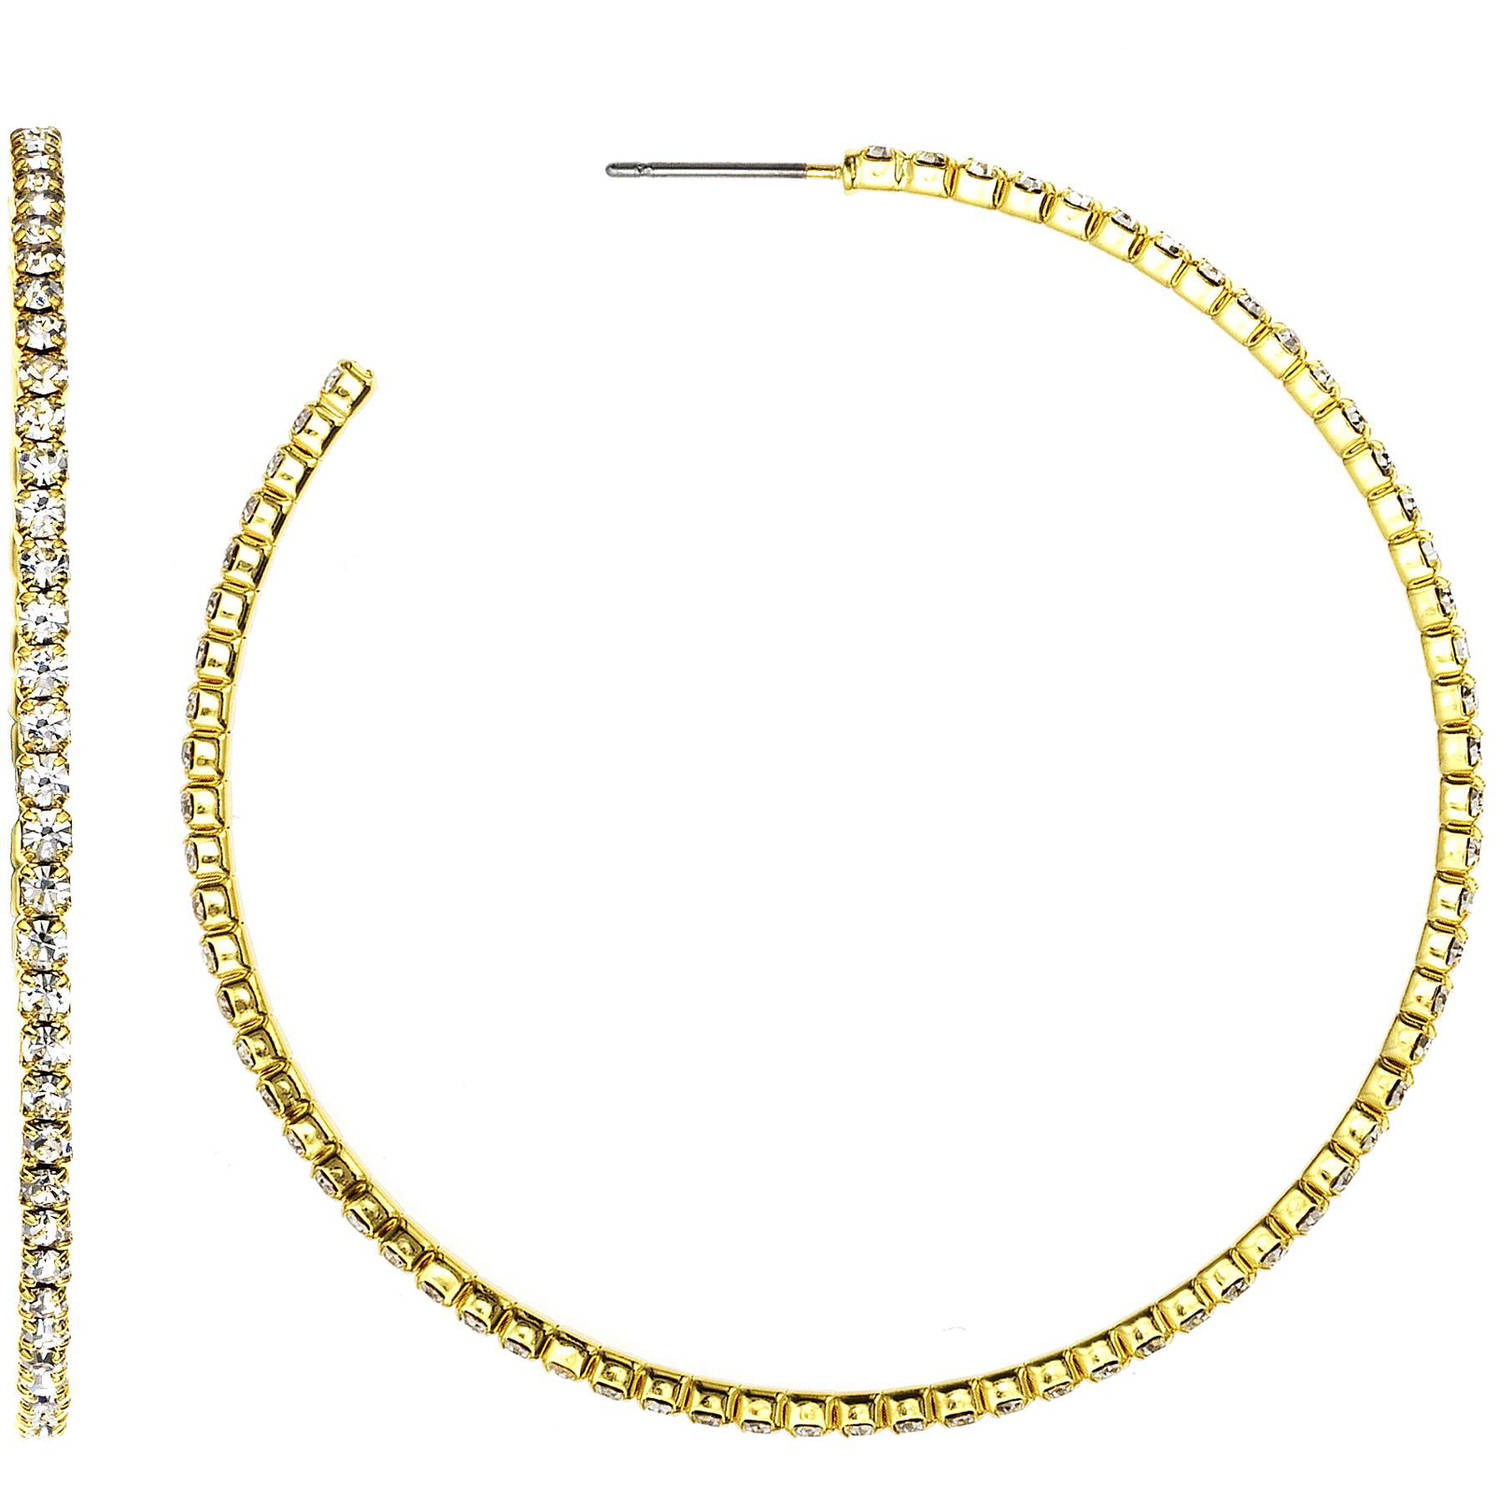 X & O Handset Austrian Crystal 14kt Gold-Plated 55mm Hoop Earrings